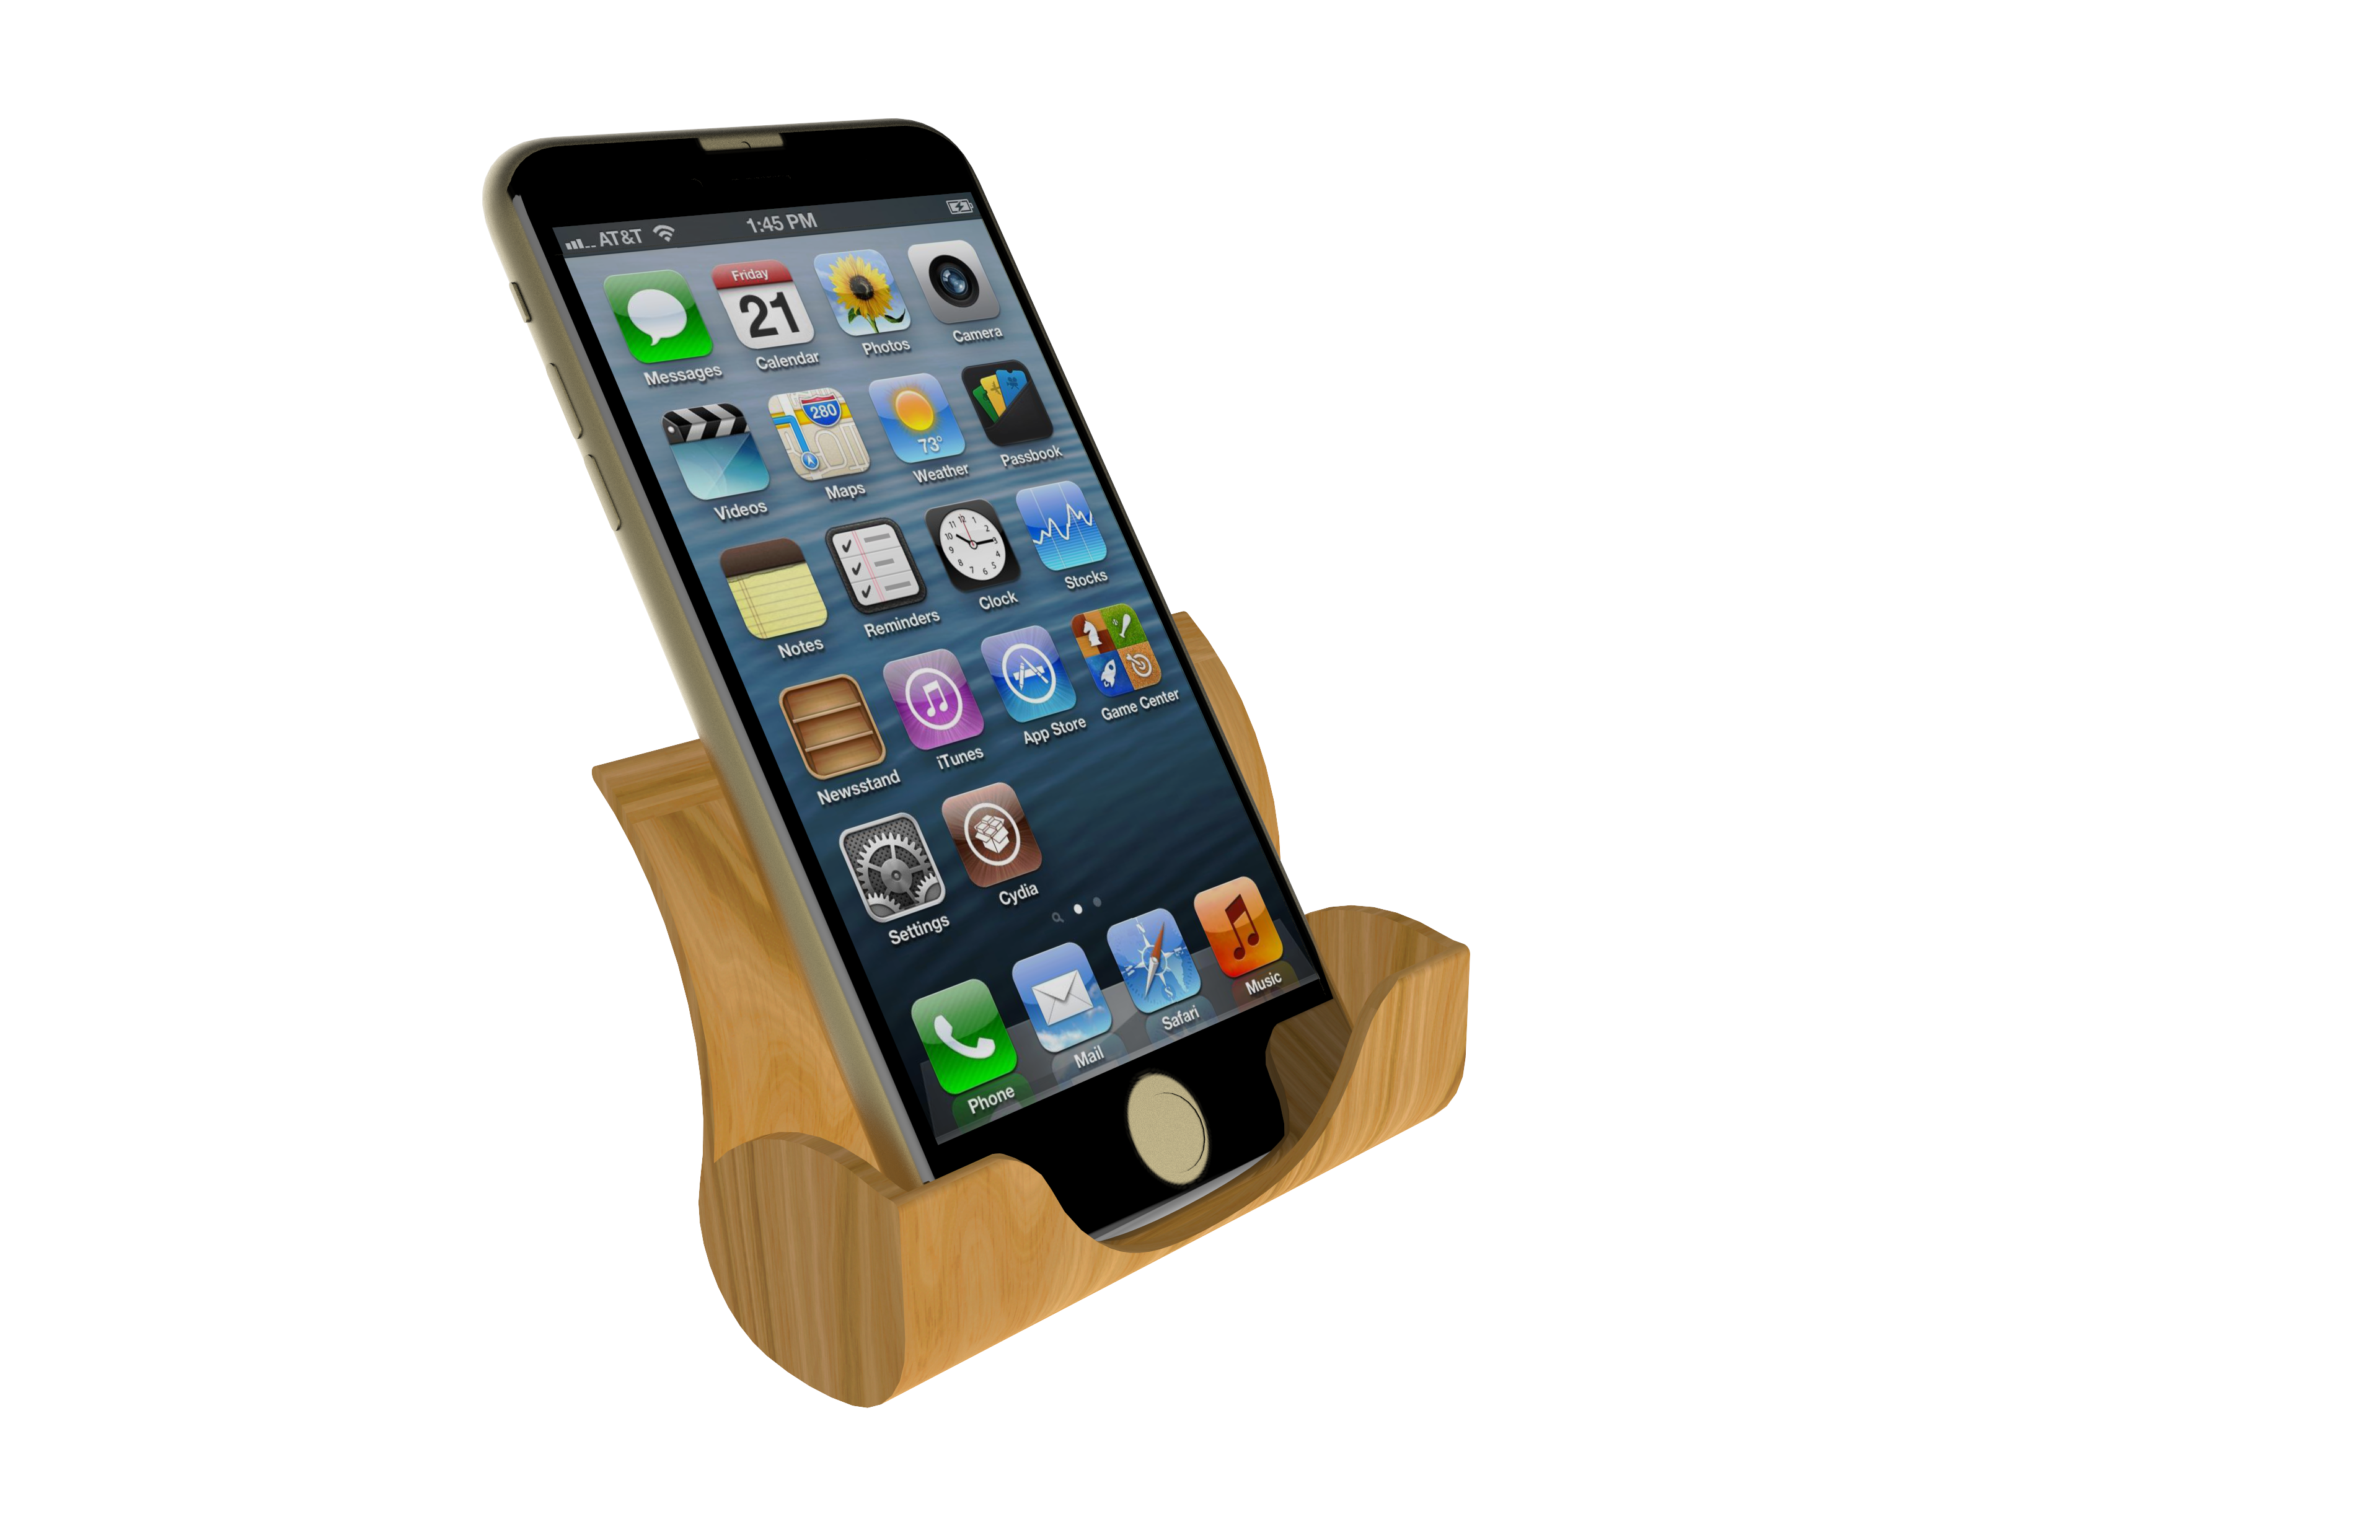 untitled.105.png Download free STL file Iphone Docking Station • 3D printer object, Brahmabeej